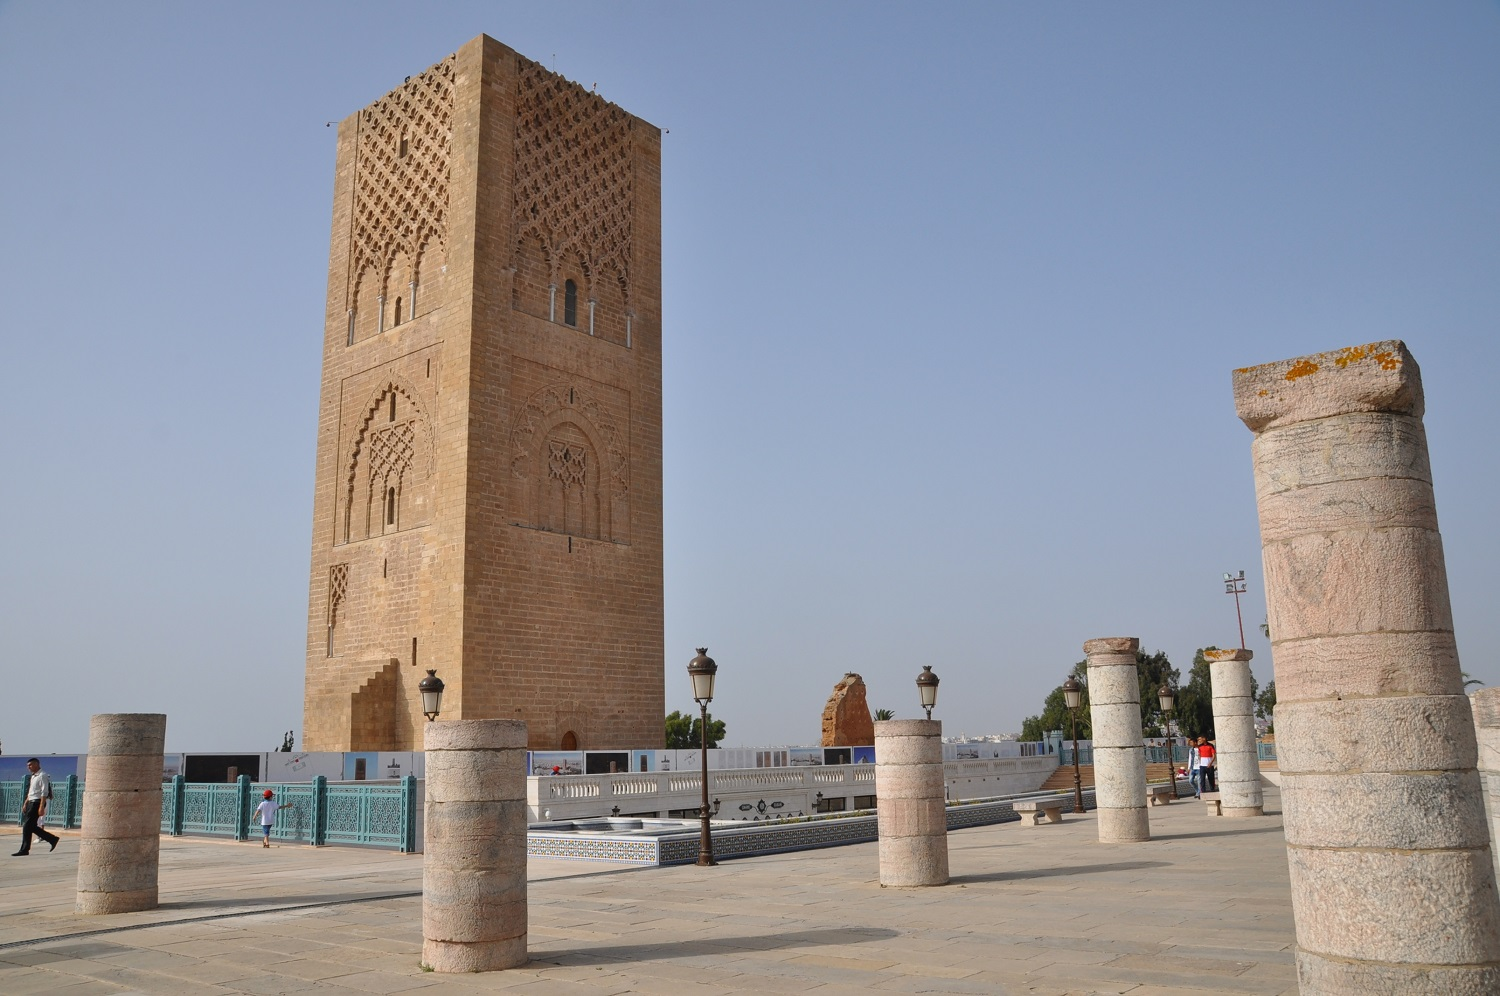 Hassan-Turm in der Hauptstadt Rabat | Hassan Tower in the capital city of Rabat